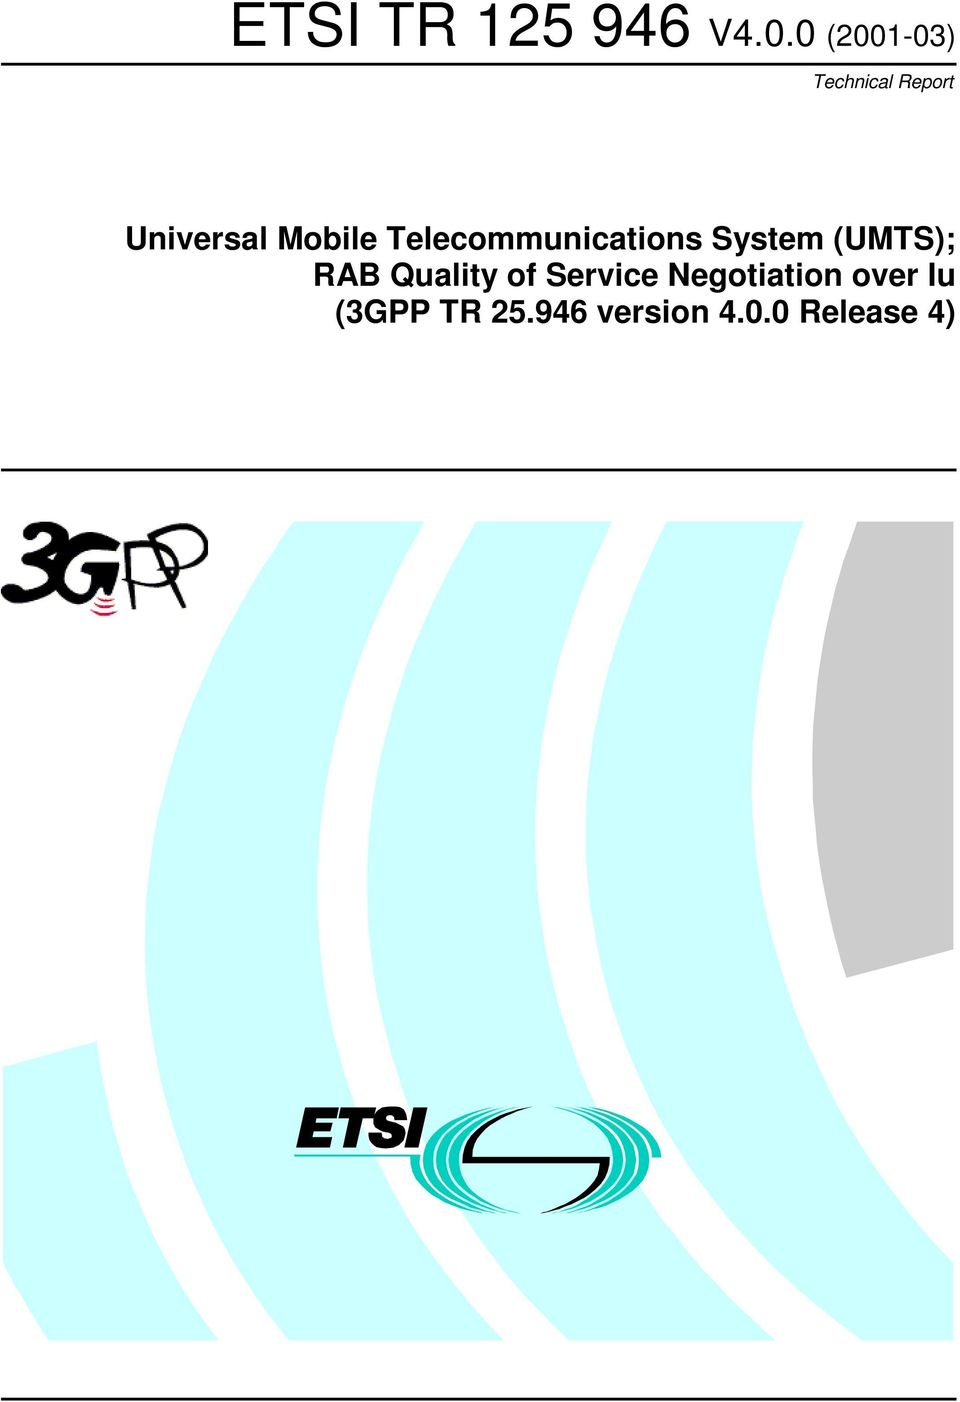 Mobile Telecommunications System (UMTS); RAB